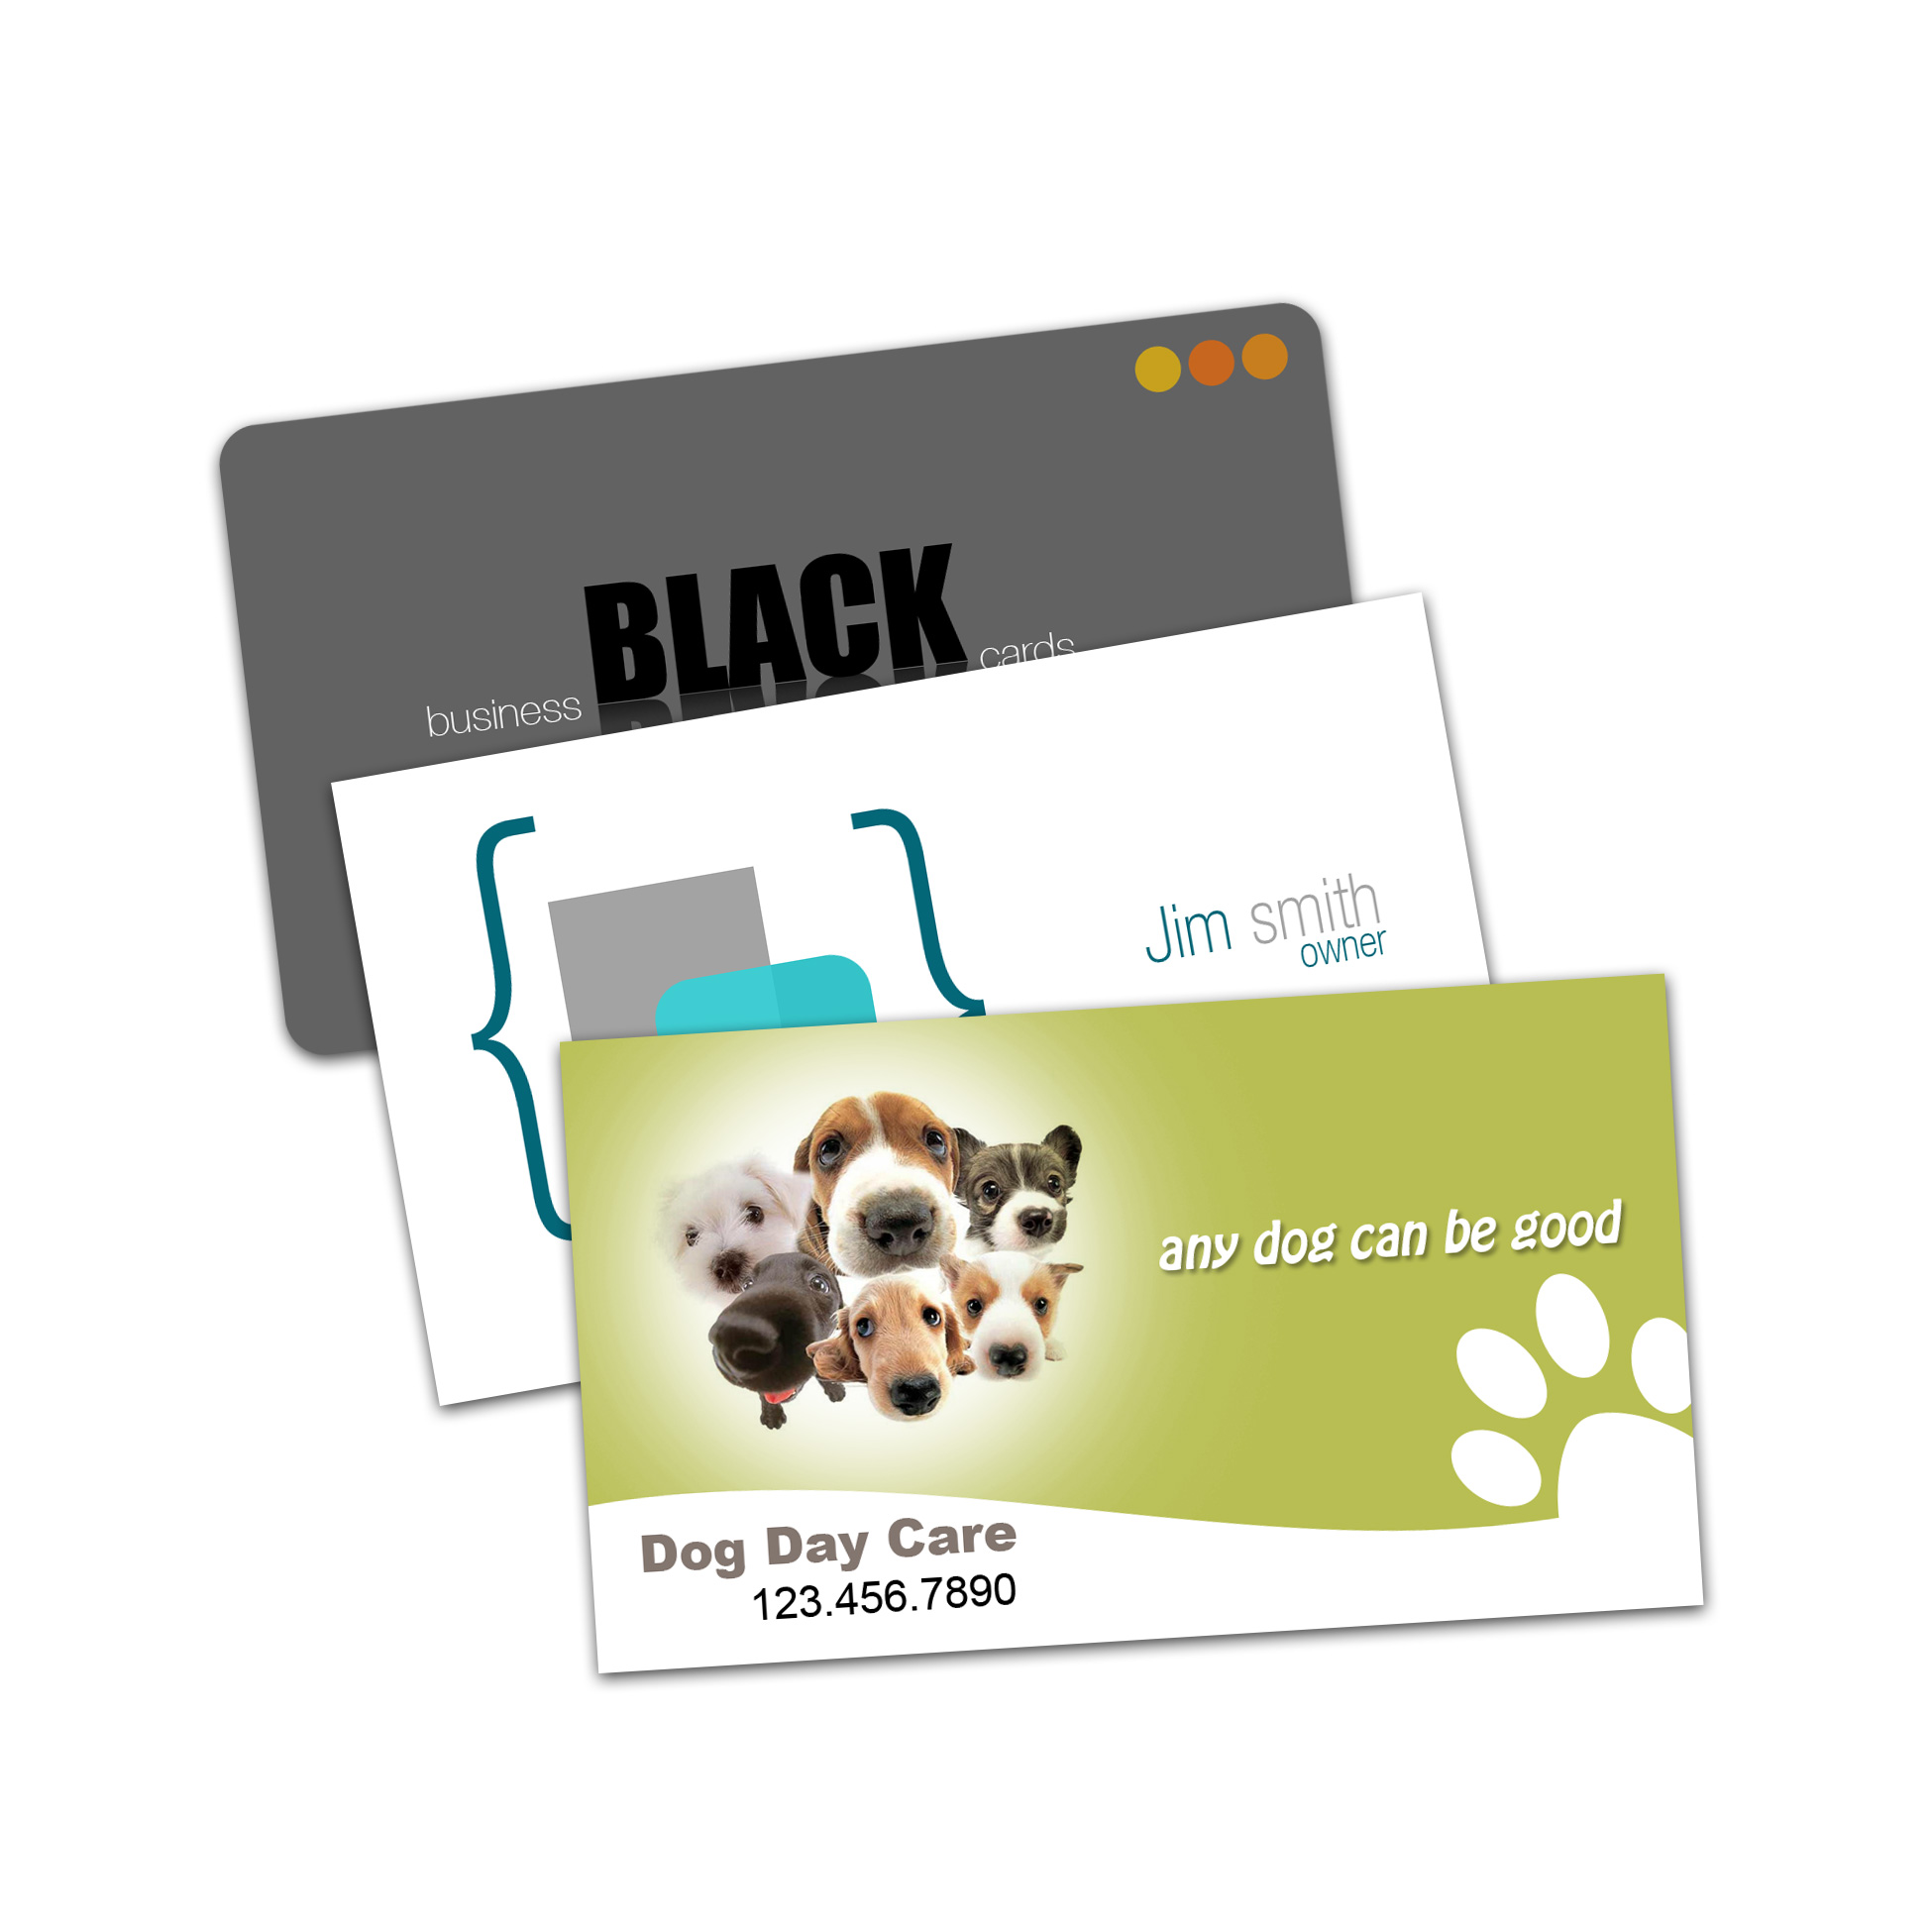 Business Cards (Laminated matte or glossy) - Cartes d'affaires (Laminées mat ou lustré)